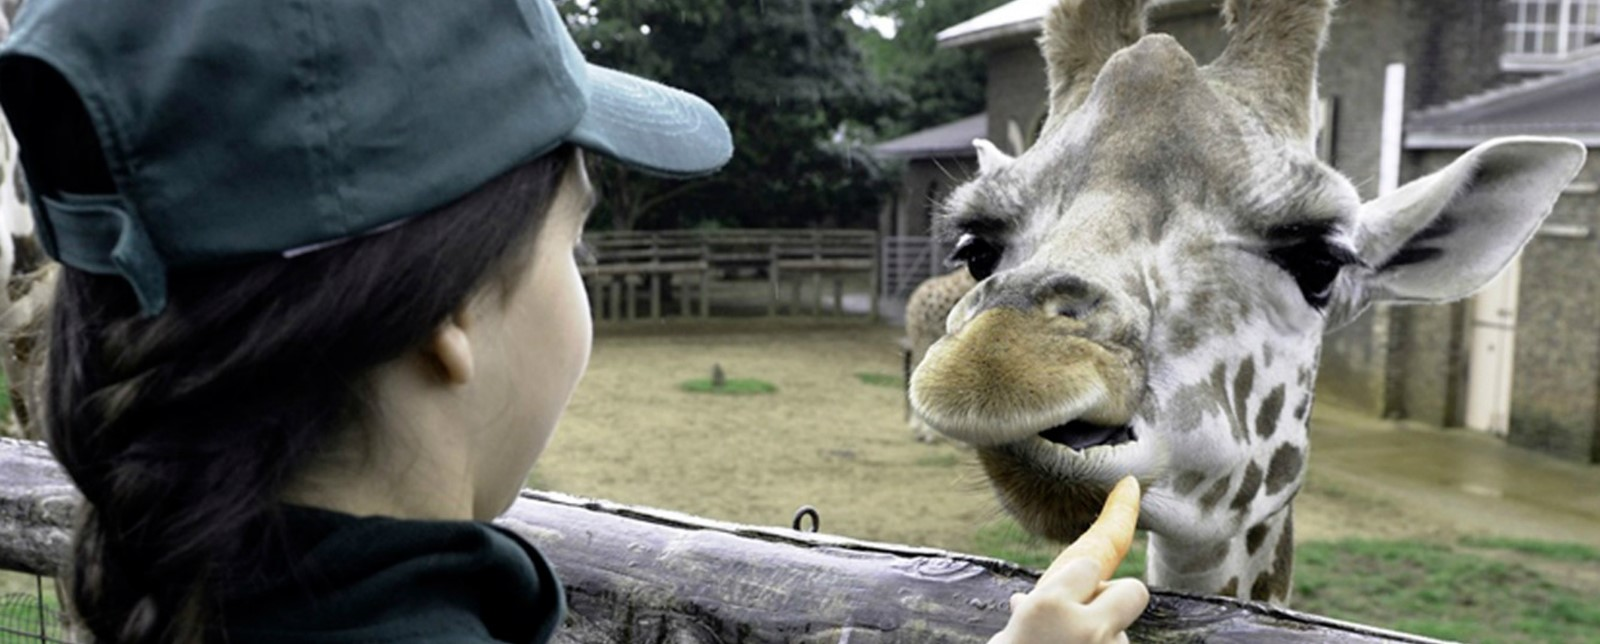 A child feeding a Giraffe at the Zoo